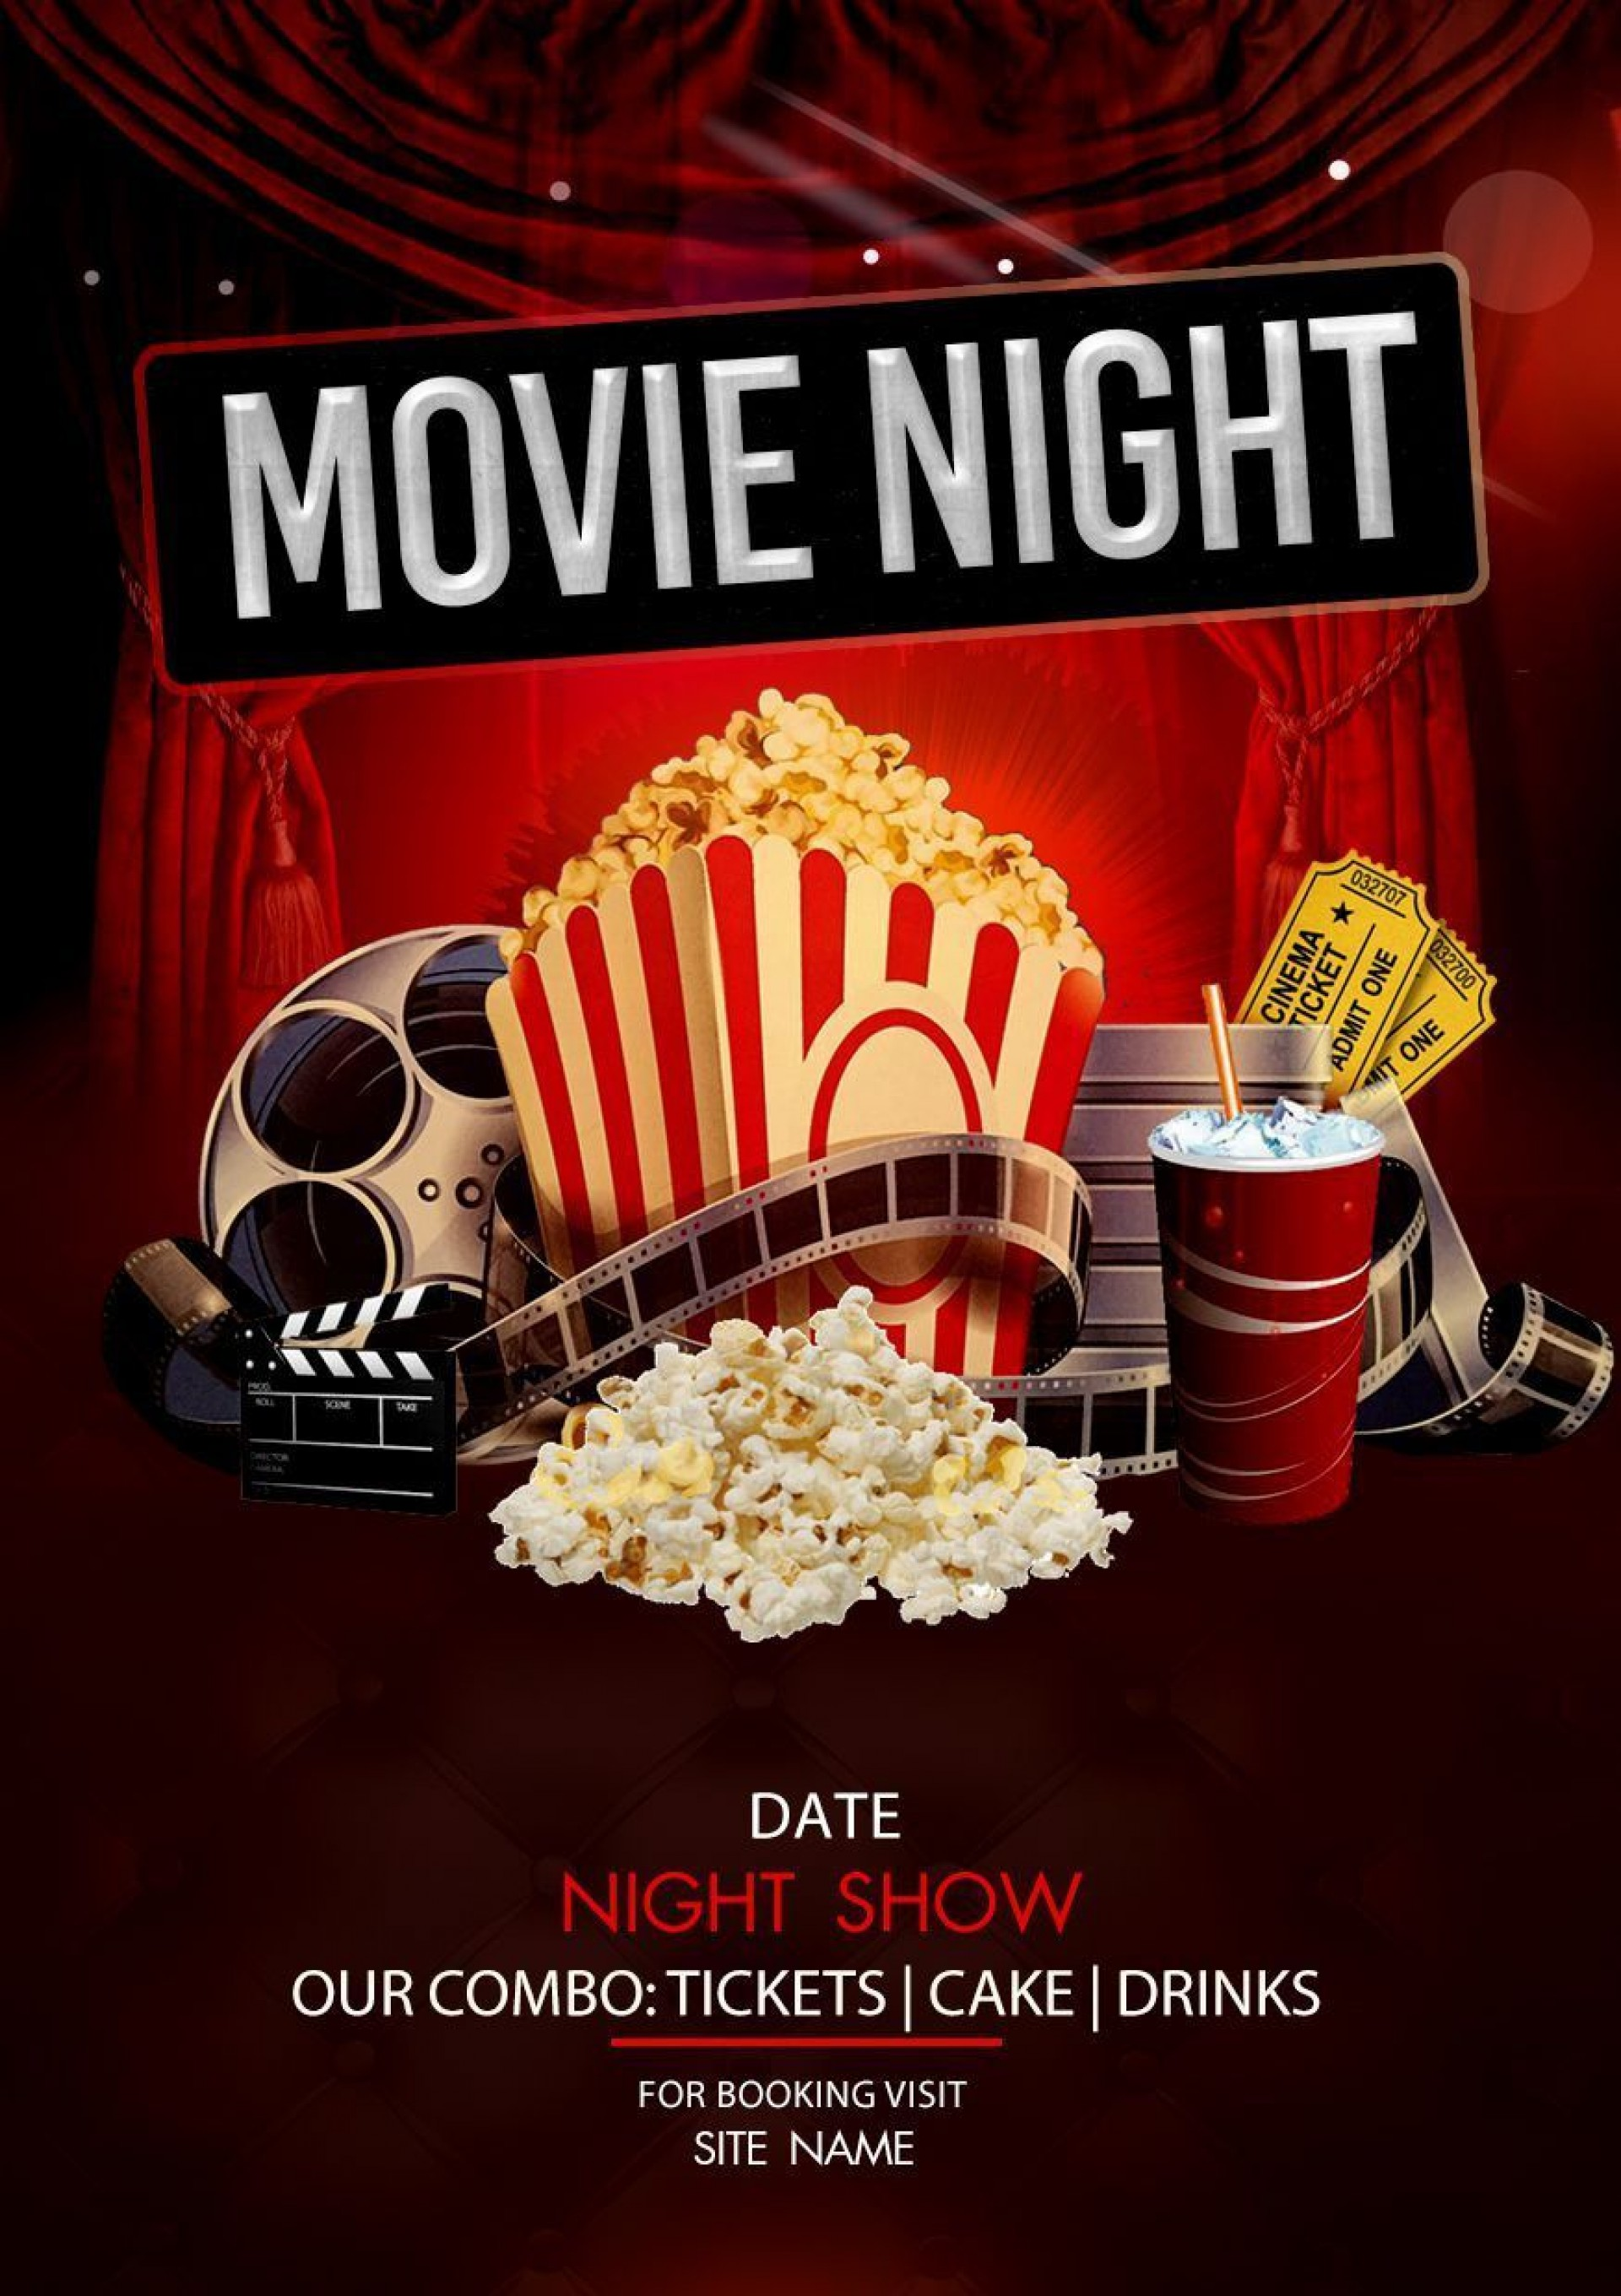 002 Dreaded Movie Night Flyer Template Image  Templates Free Microsoft Word1920